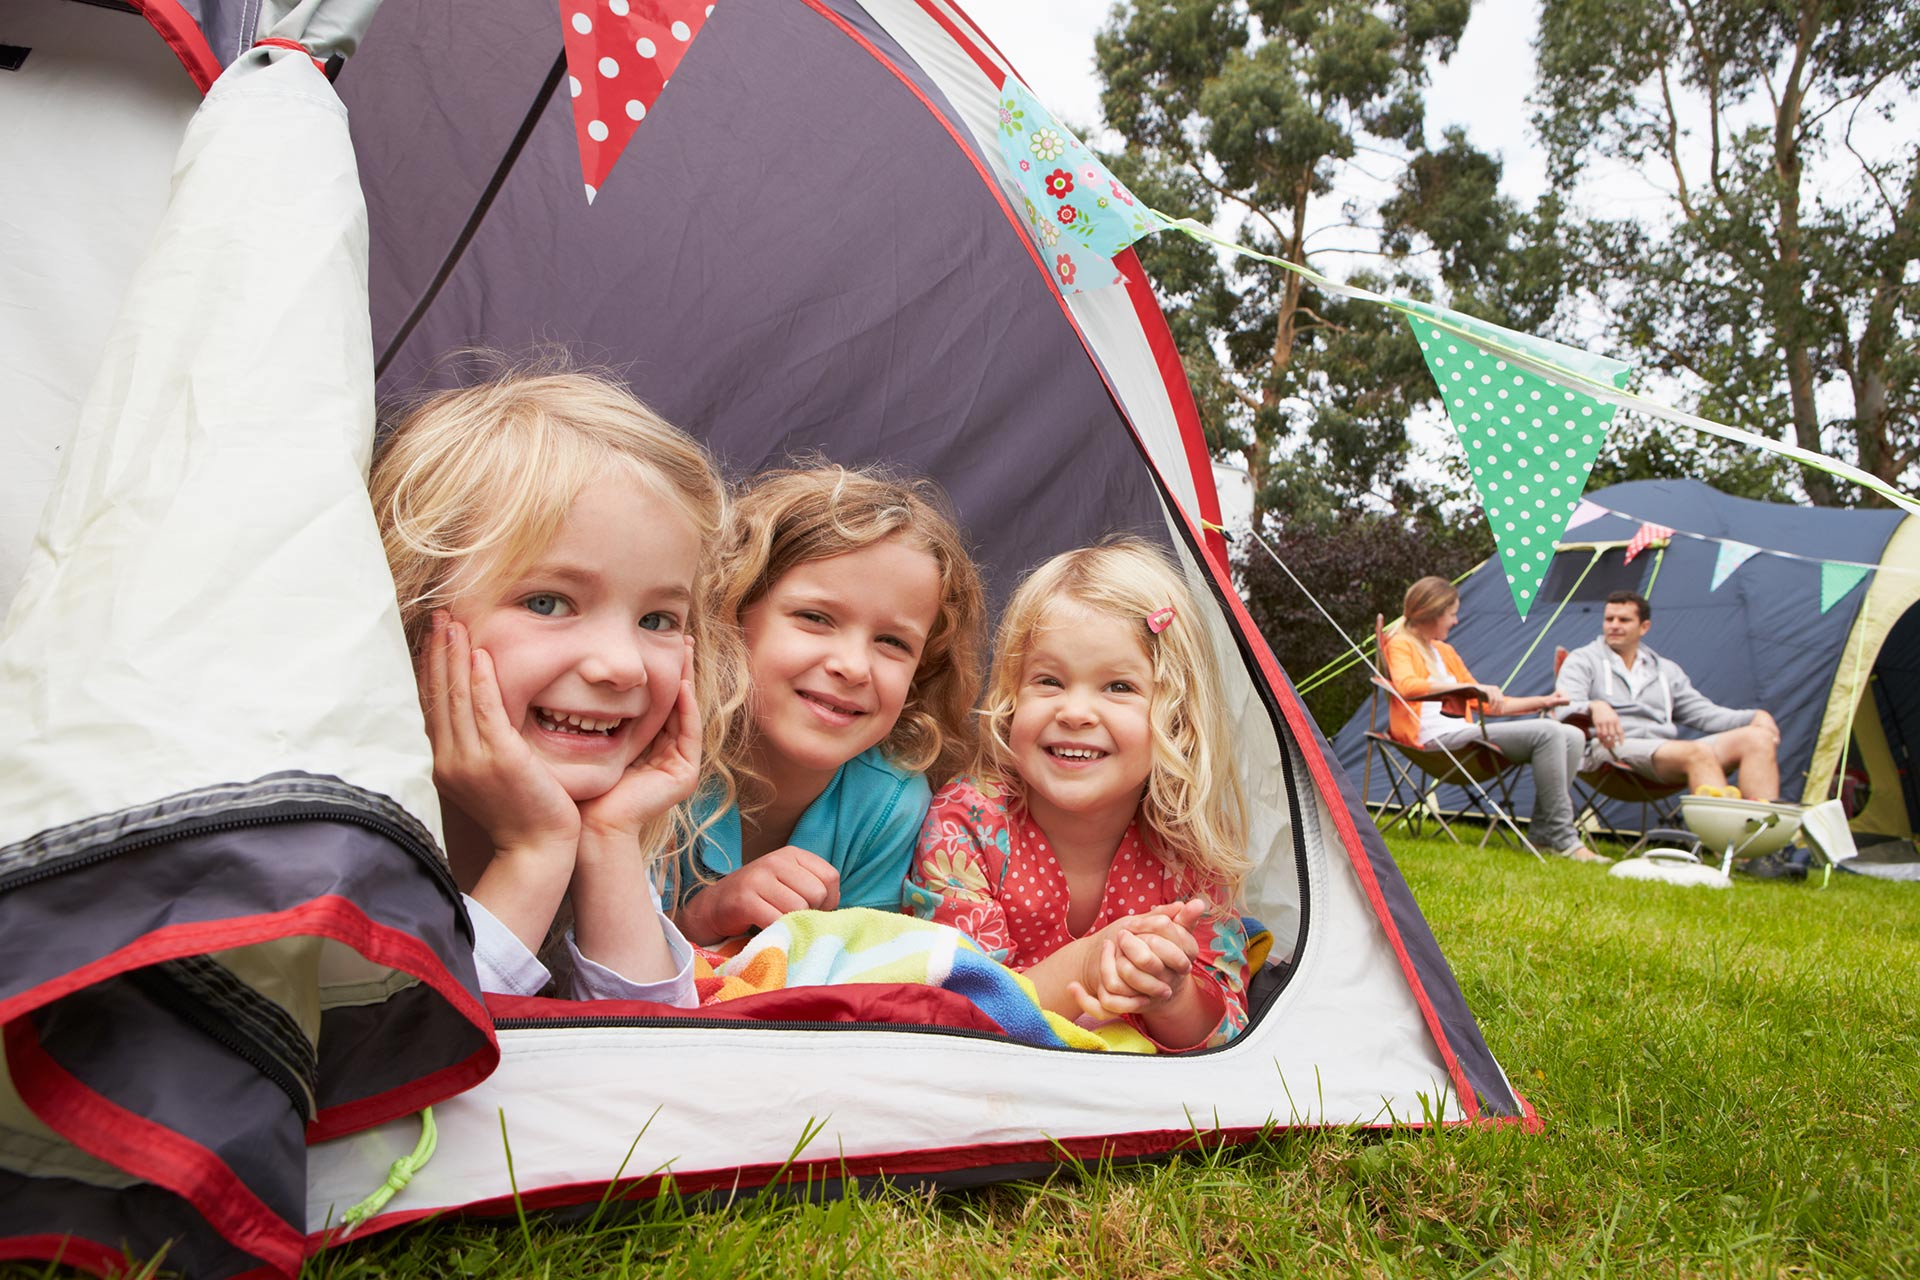 A family enjoying a camping trip together.